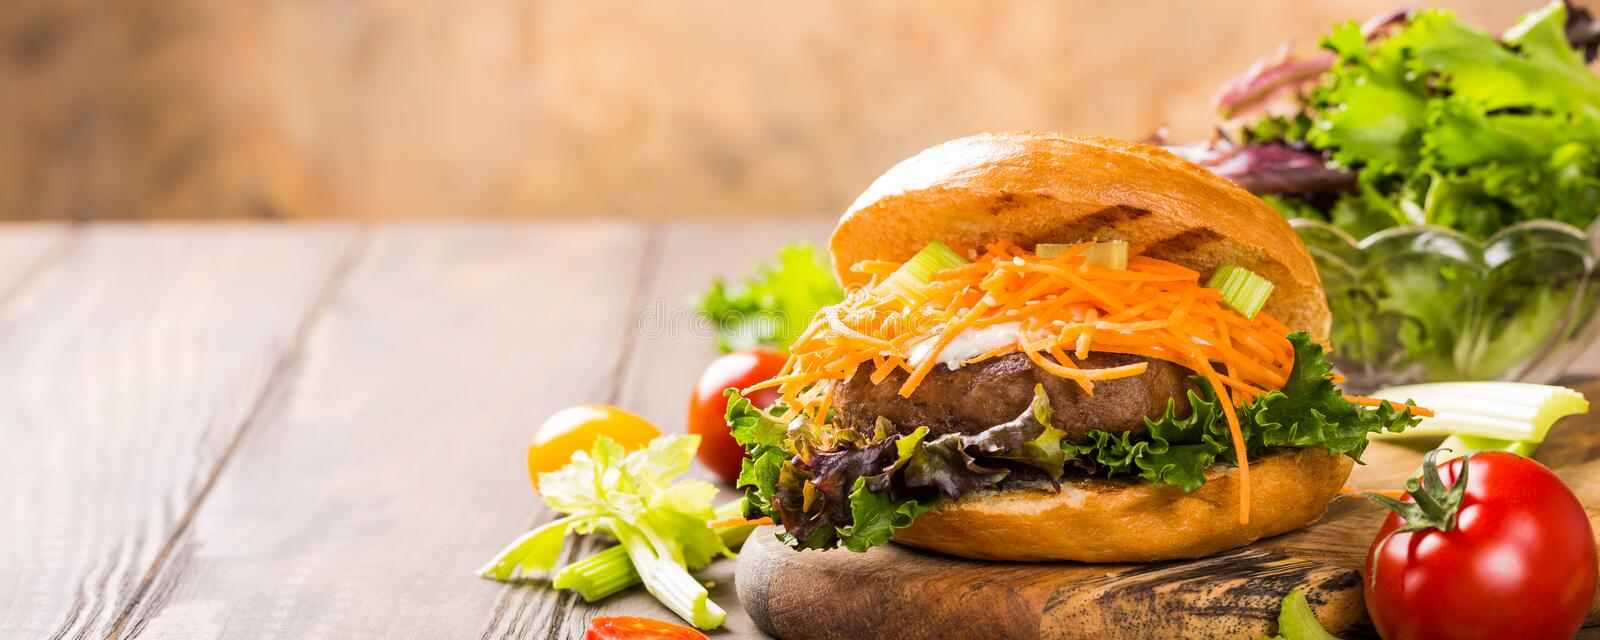 Delicious bagel burger royalty free stock image